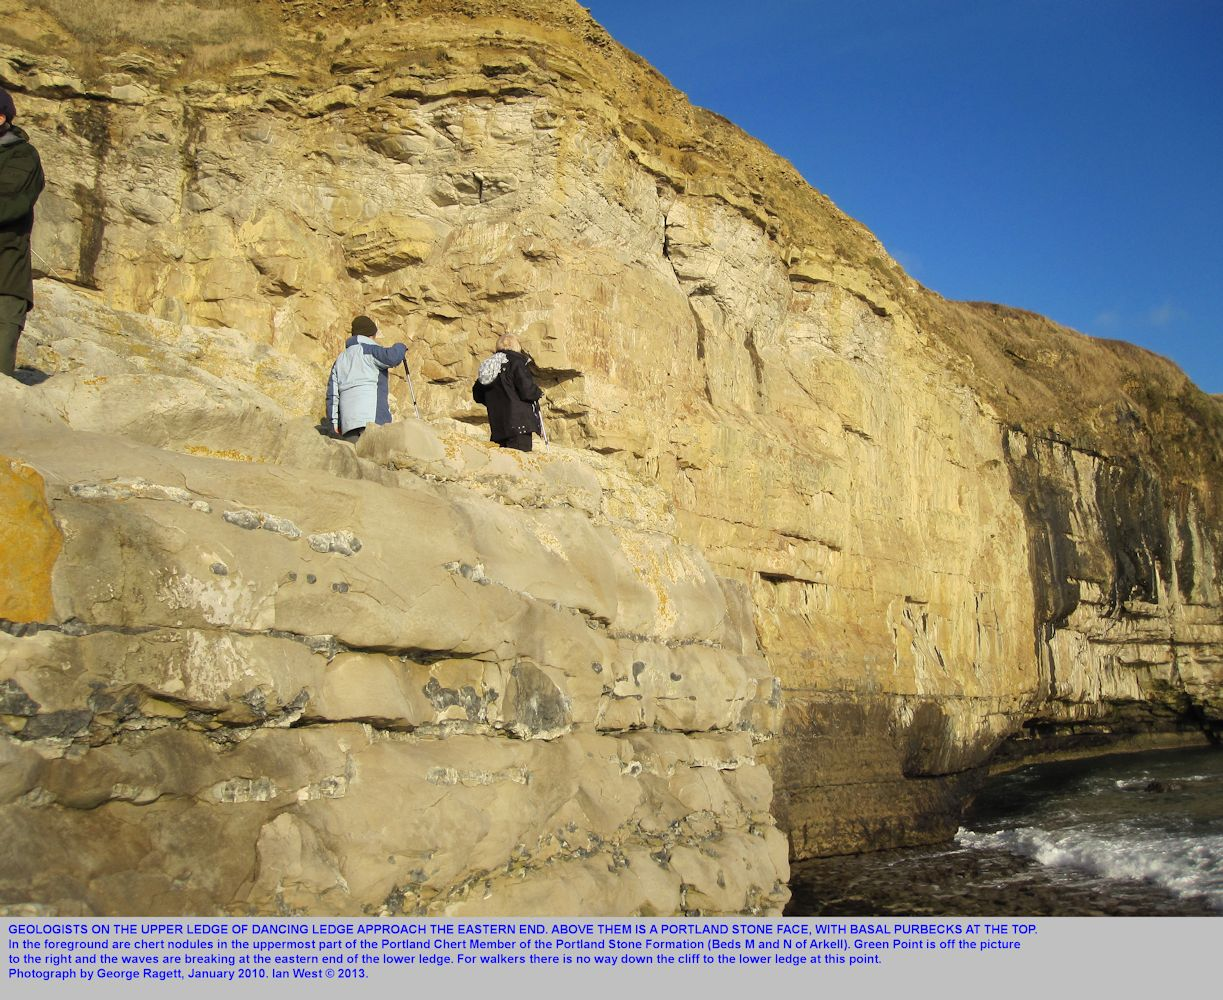 The eastern end of the upper ledge of Dancing Ledge, near Swanage, Isle of Purbeck, Dorset, 2010